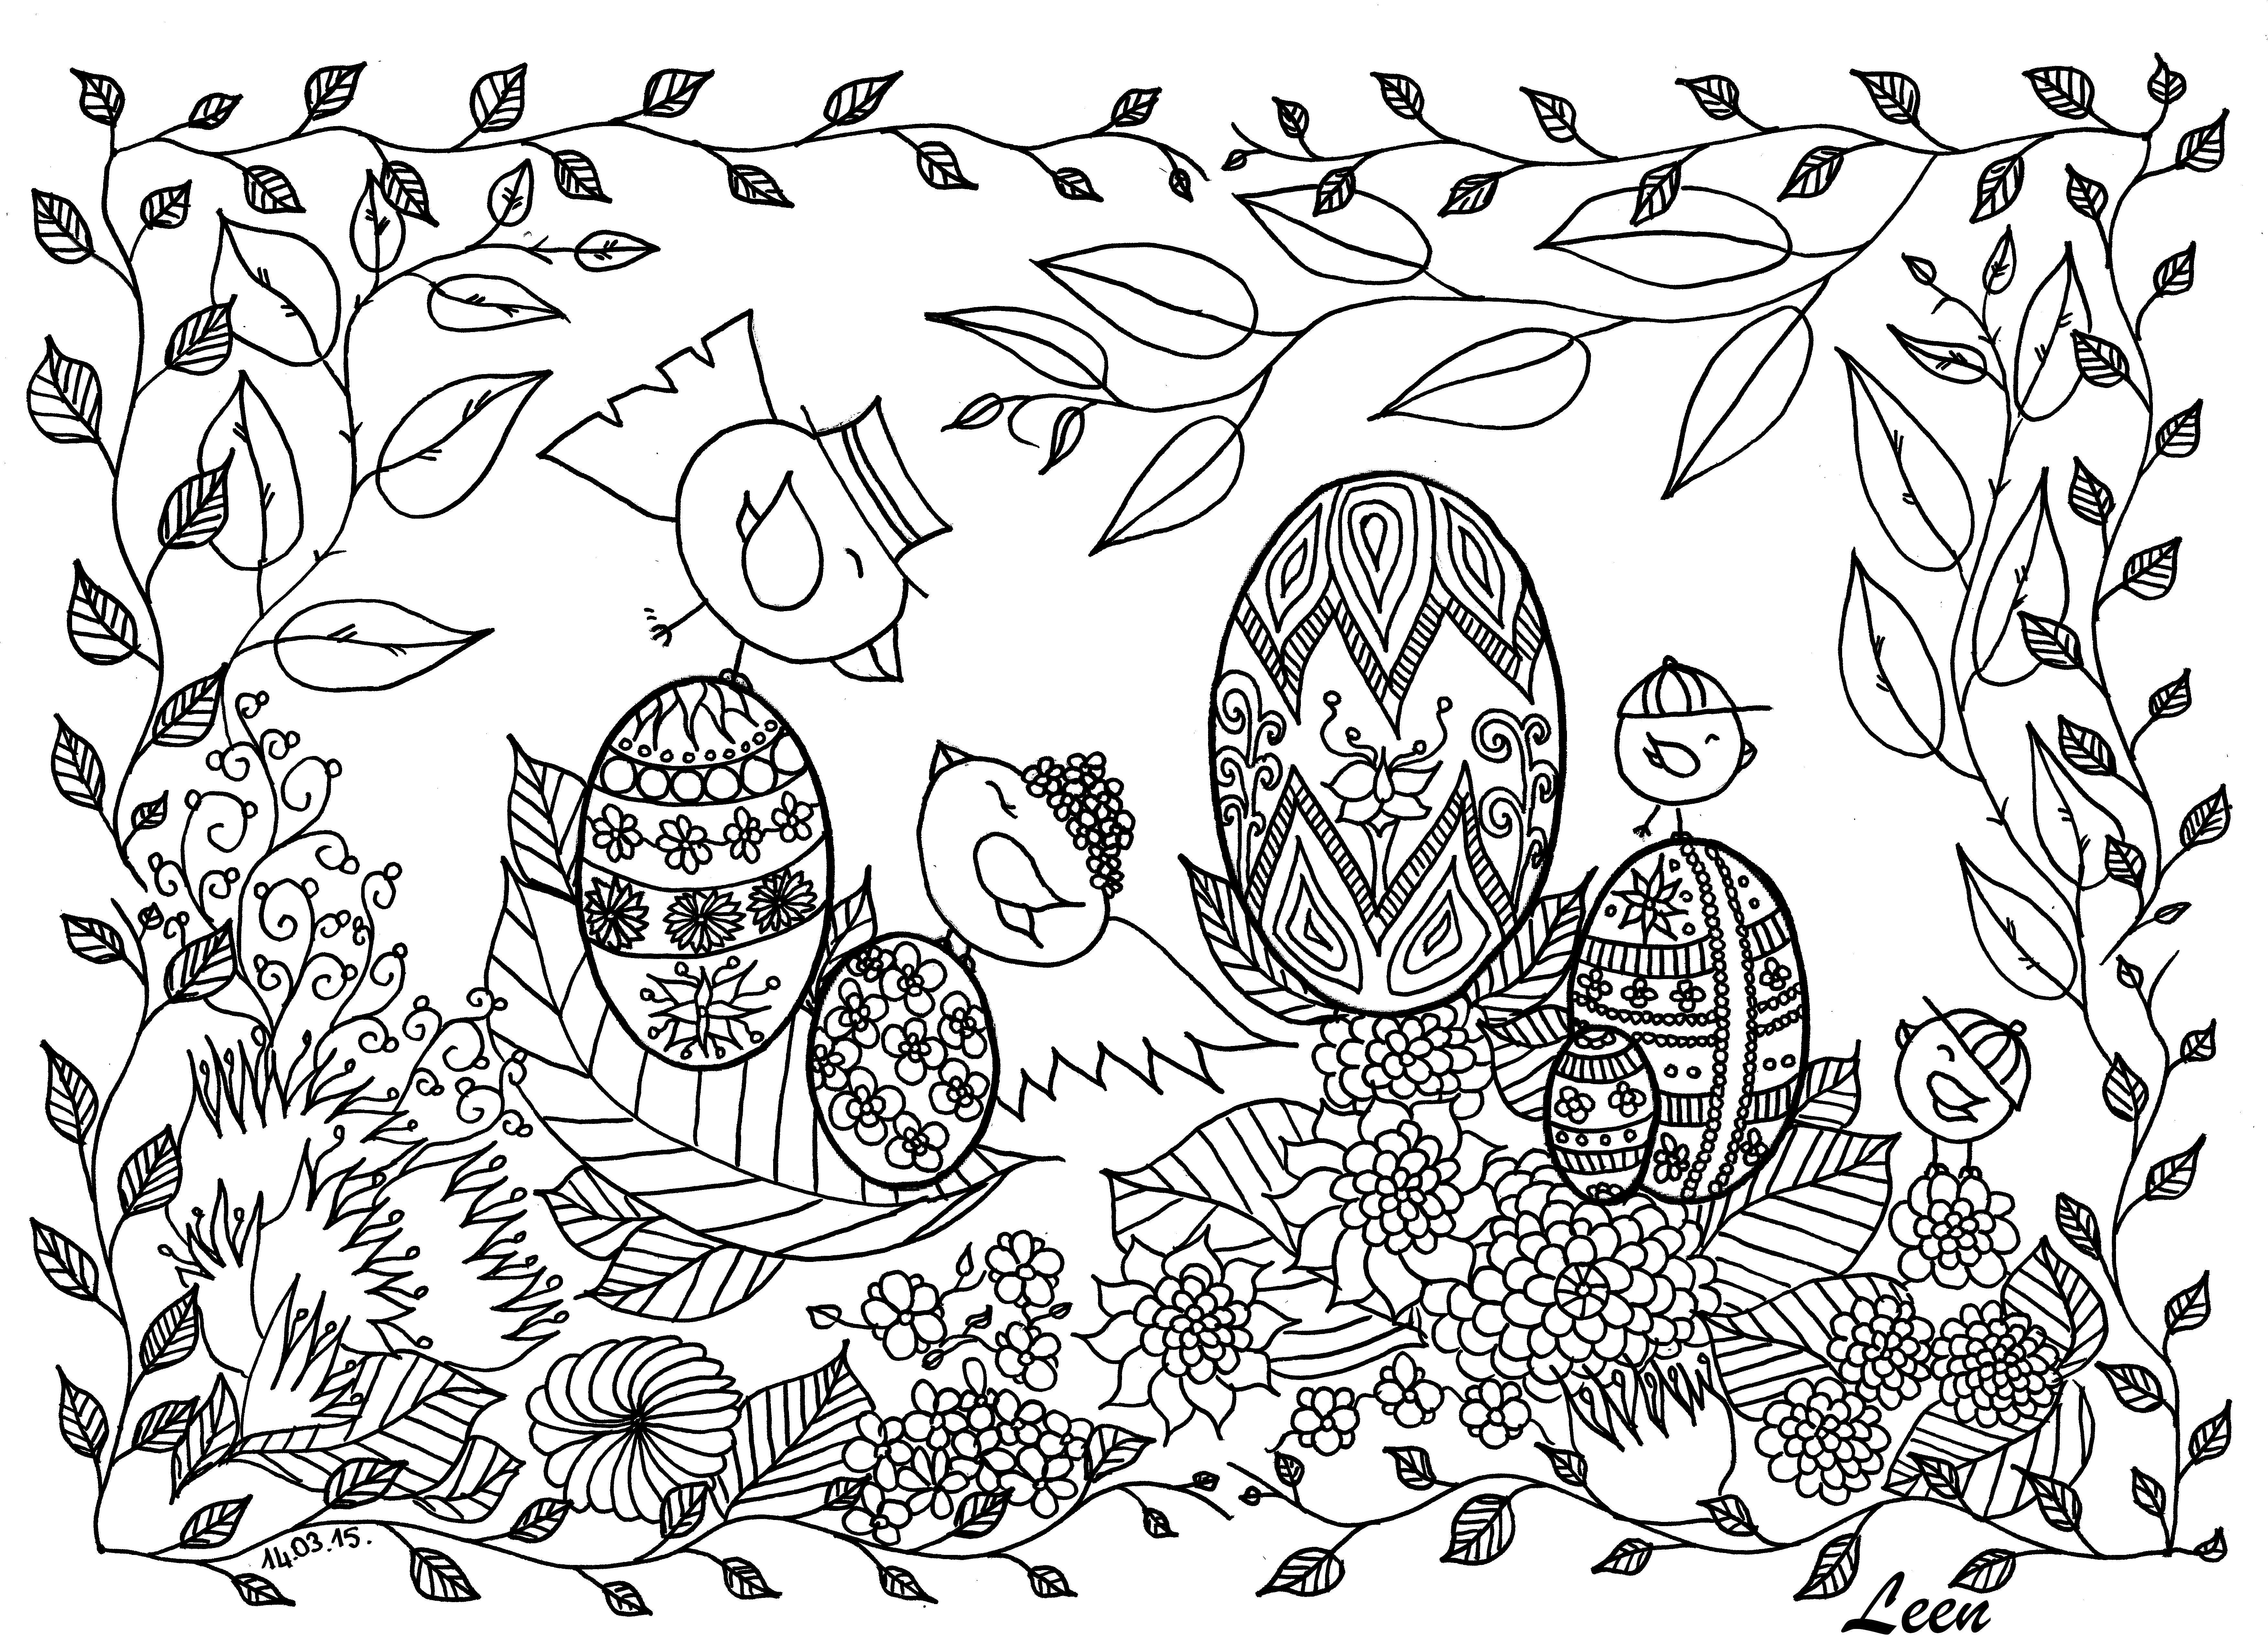 Free coloring page coloringeggsbyleenmargot. Coloring